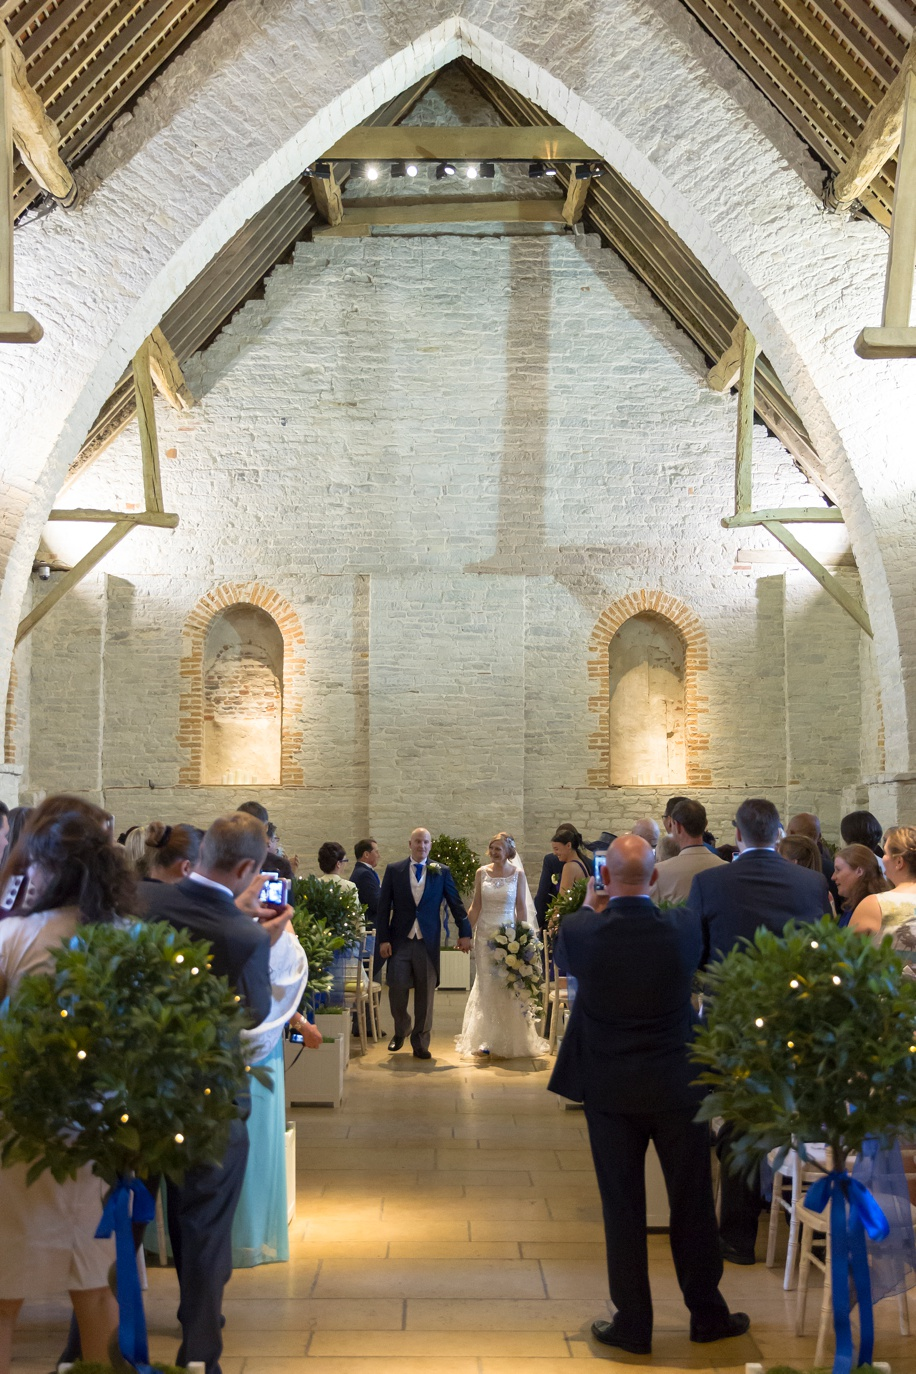 tithe-barn-wedding-photography-hmc120915_0025